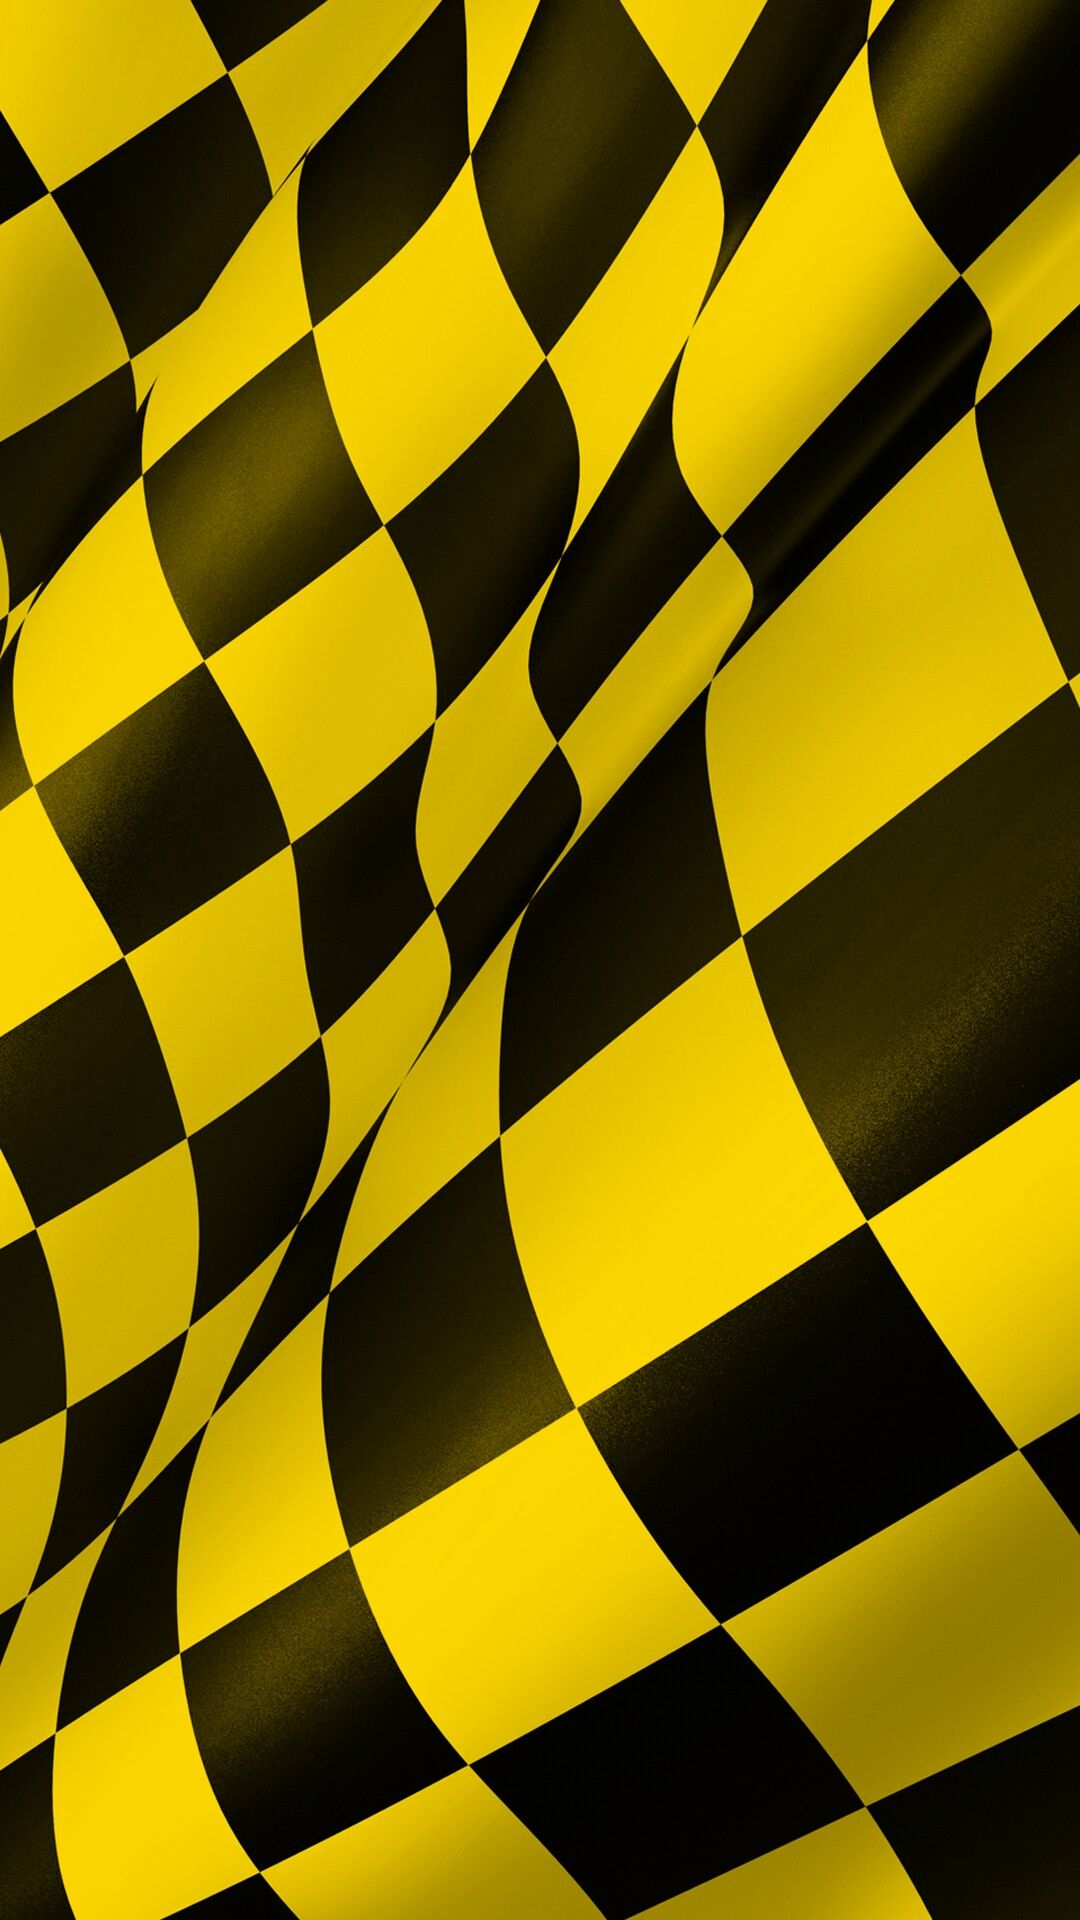 Yellow Checkered Flag Iphone Wallpaper Yellow Hd Cool